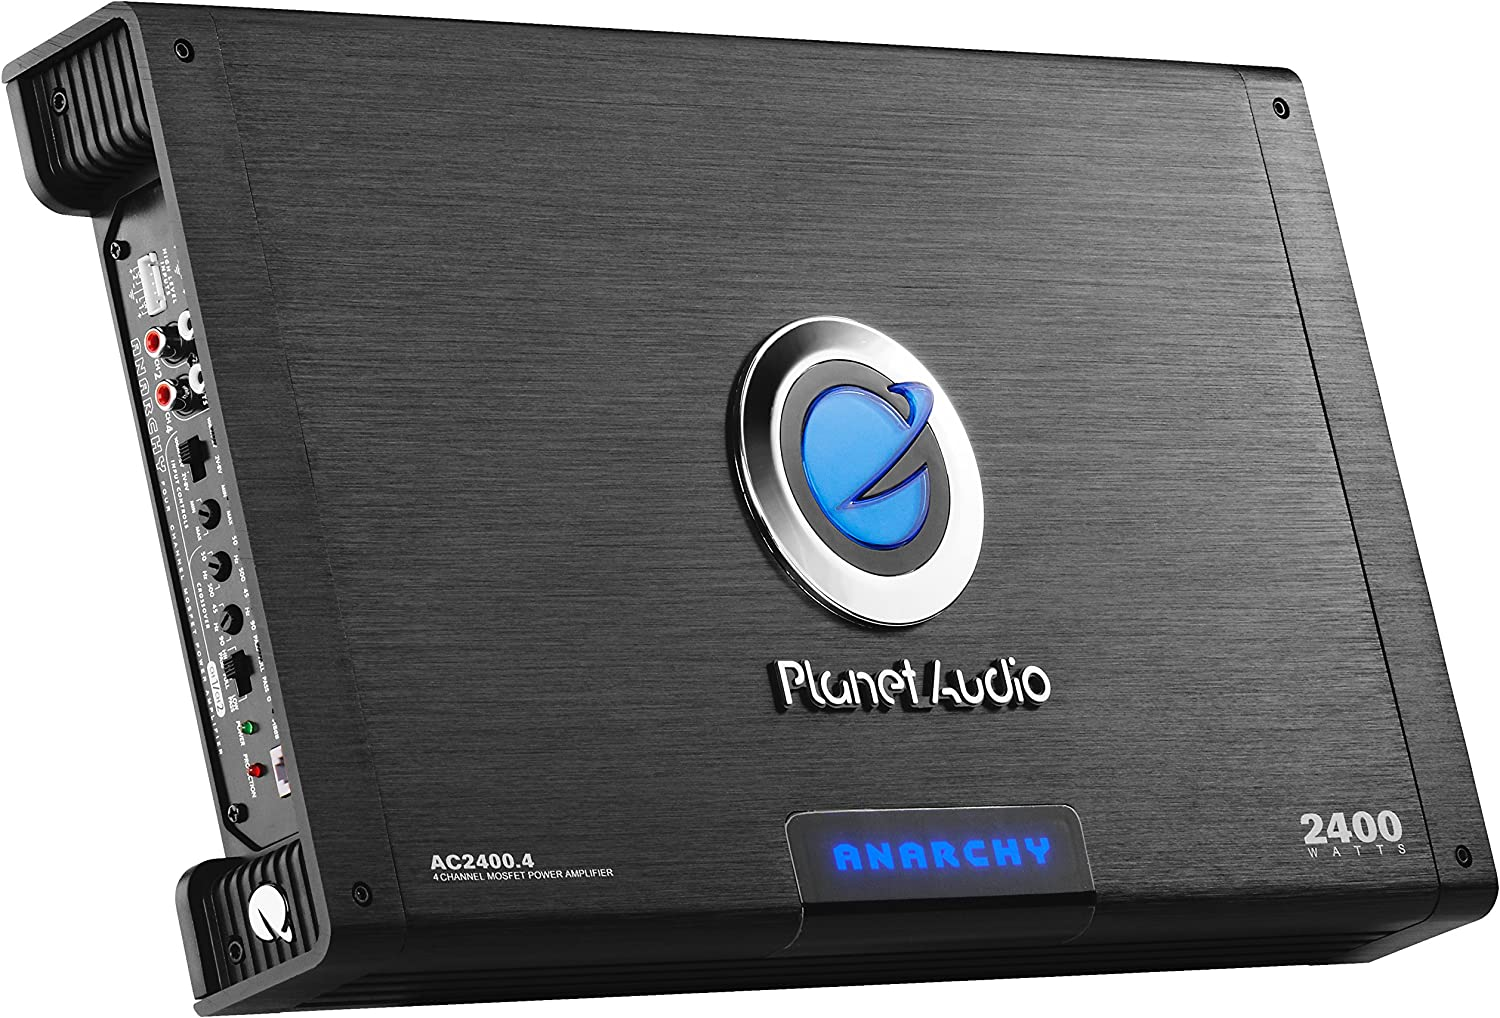 Class A//B 2400 Watts Mosfet Power Supply Full Range 2-4 Ohm Stable Planet Audio AC2400.4 4 Channel Car Amplifier Bridgeable